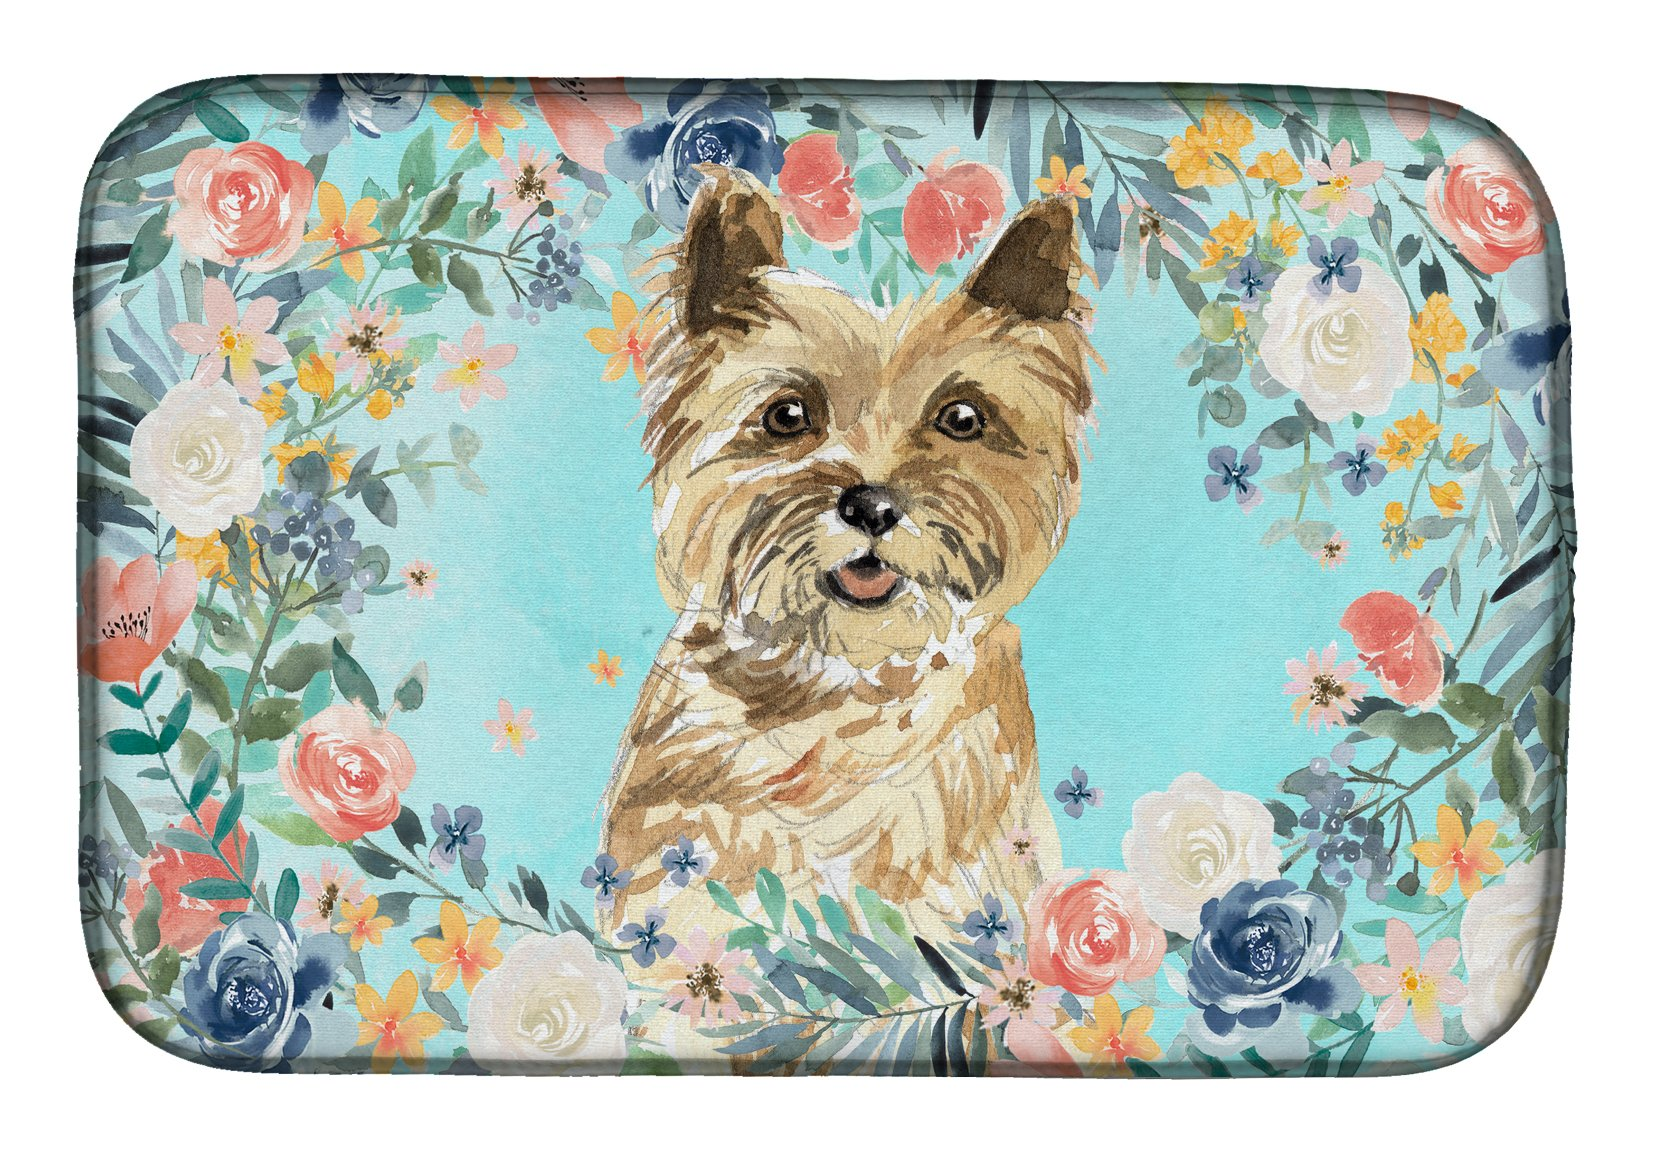 Buy this Cairn Terrier Dish Drying Mat CK3430DDM